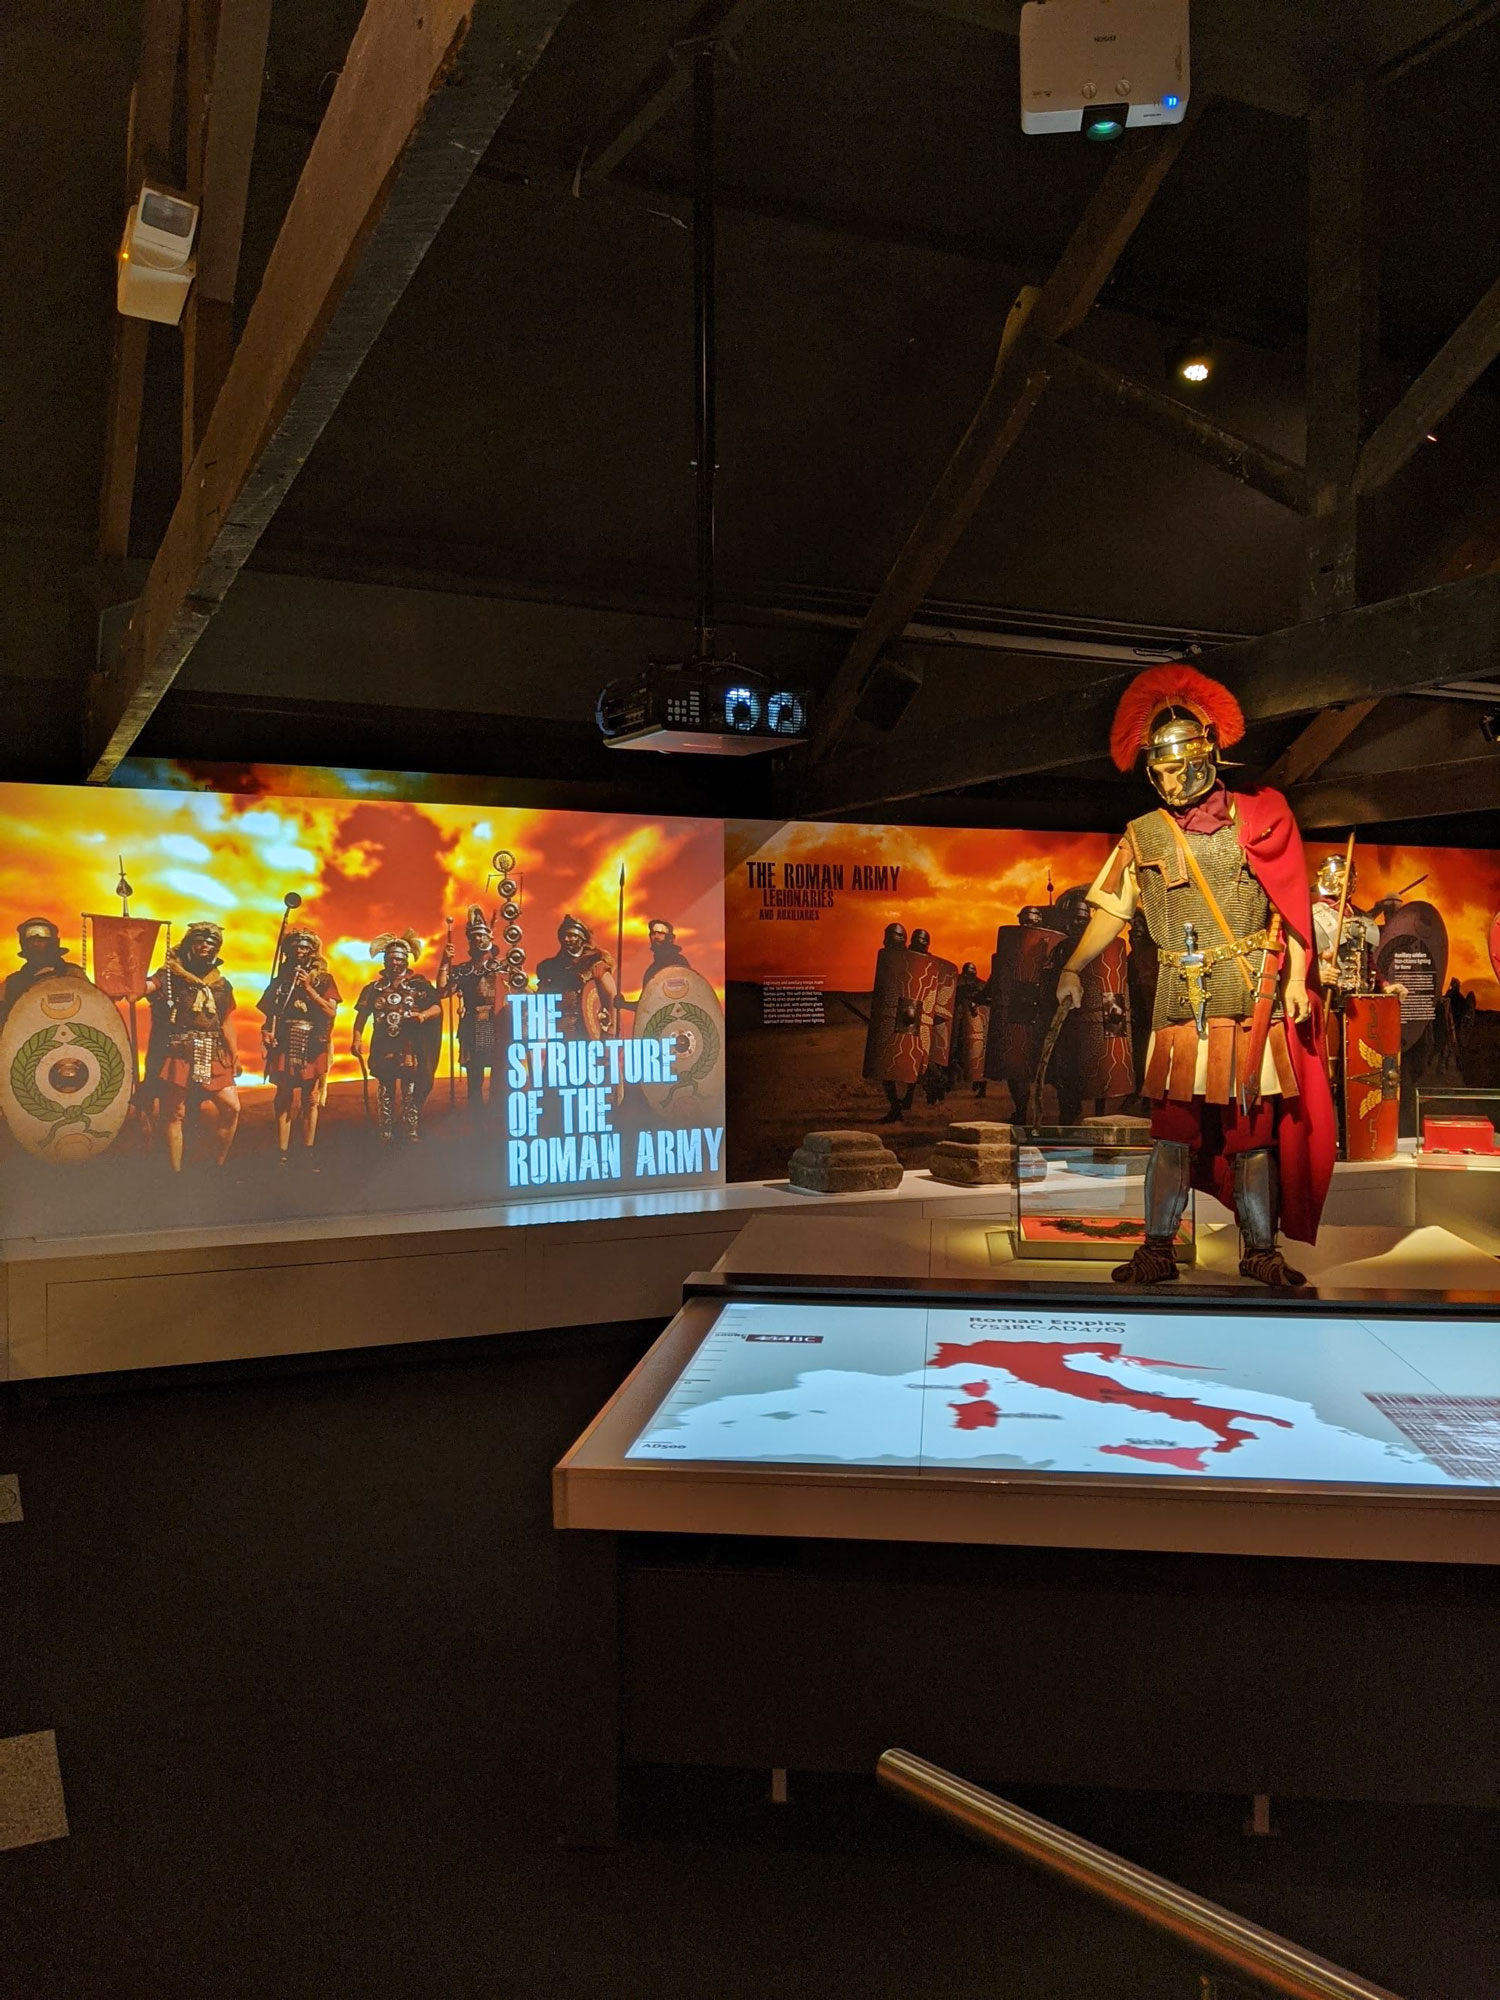 At the Roman Army Museum